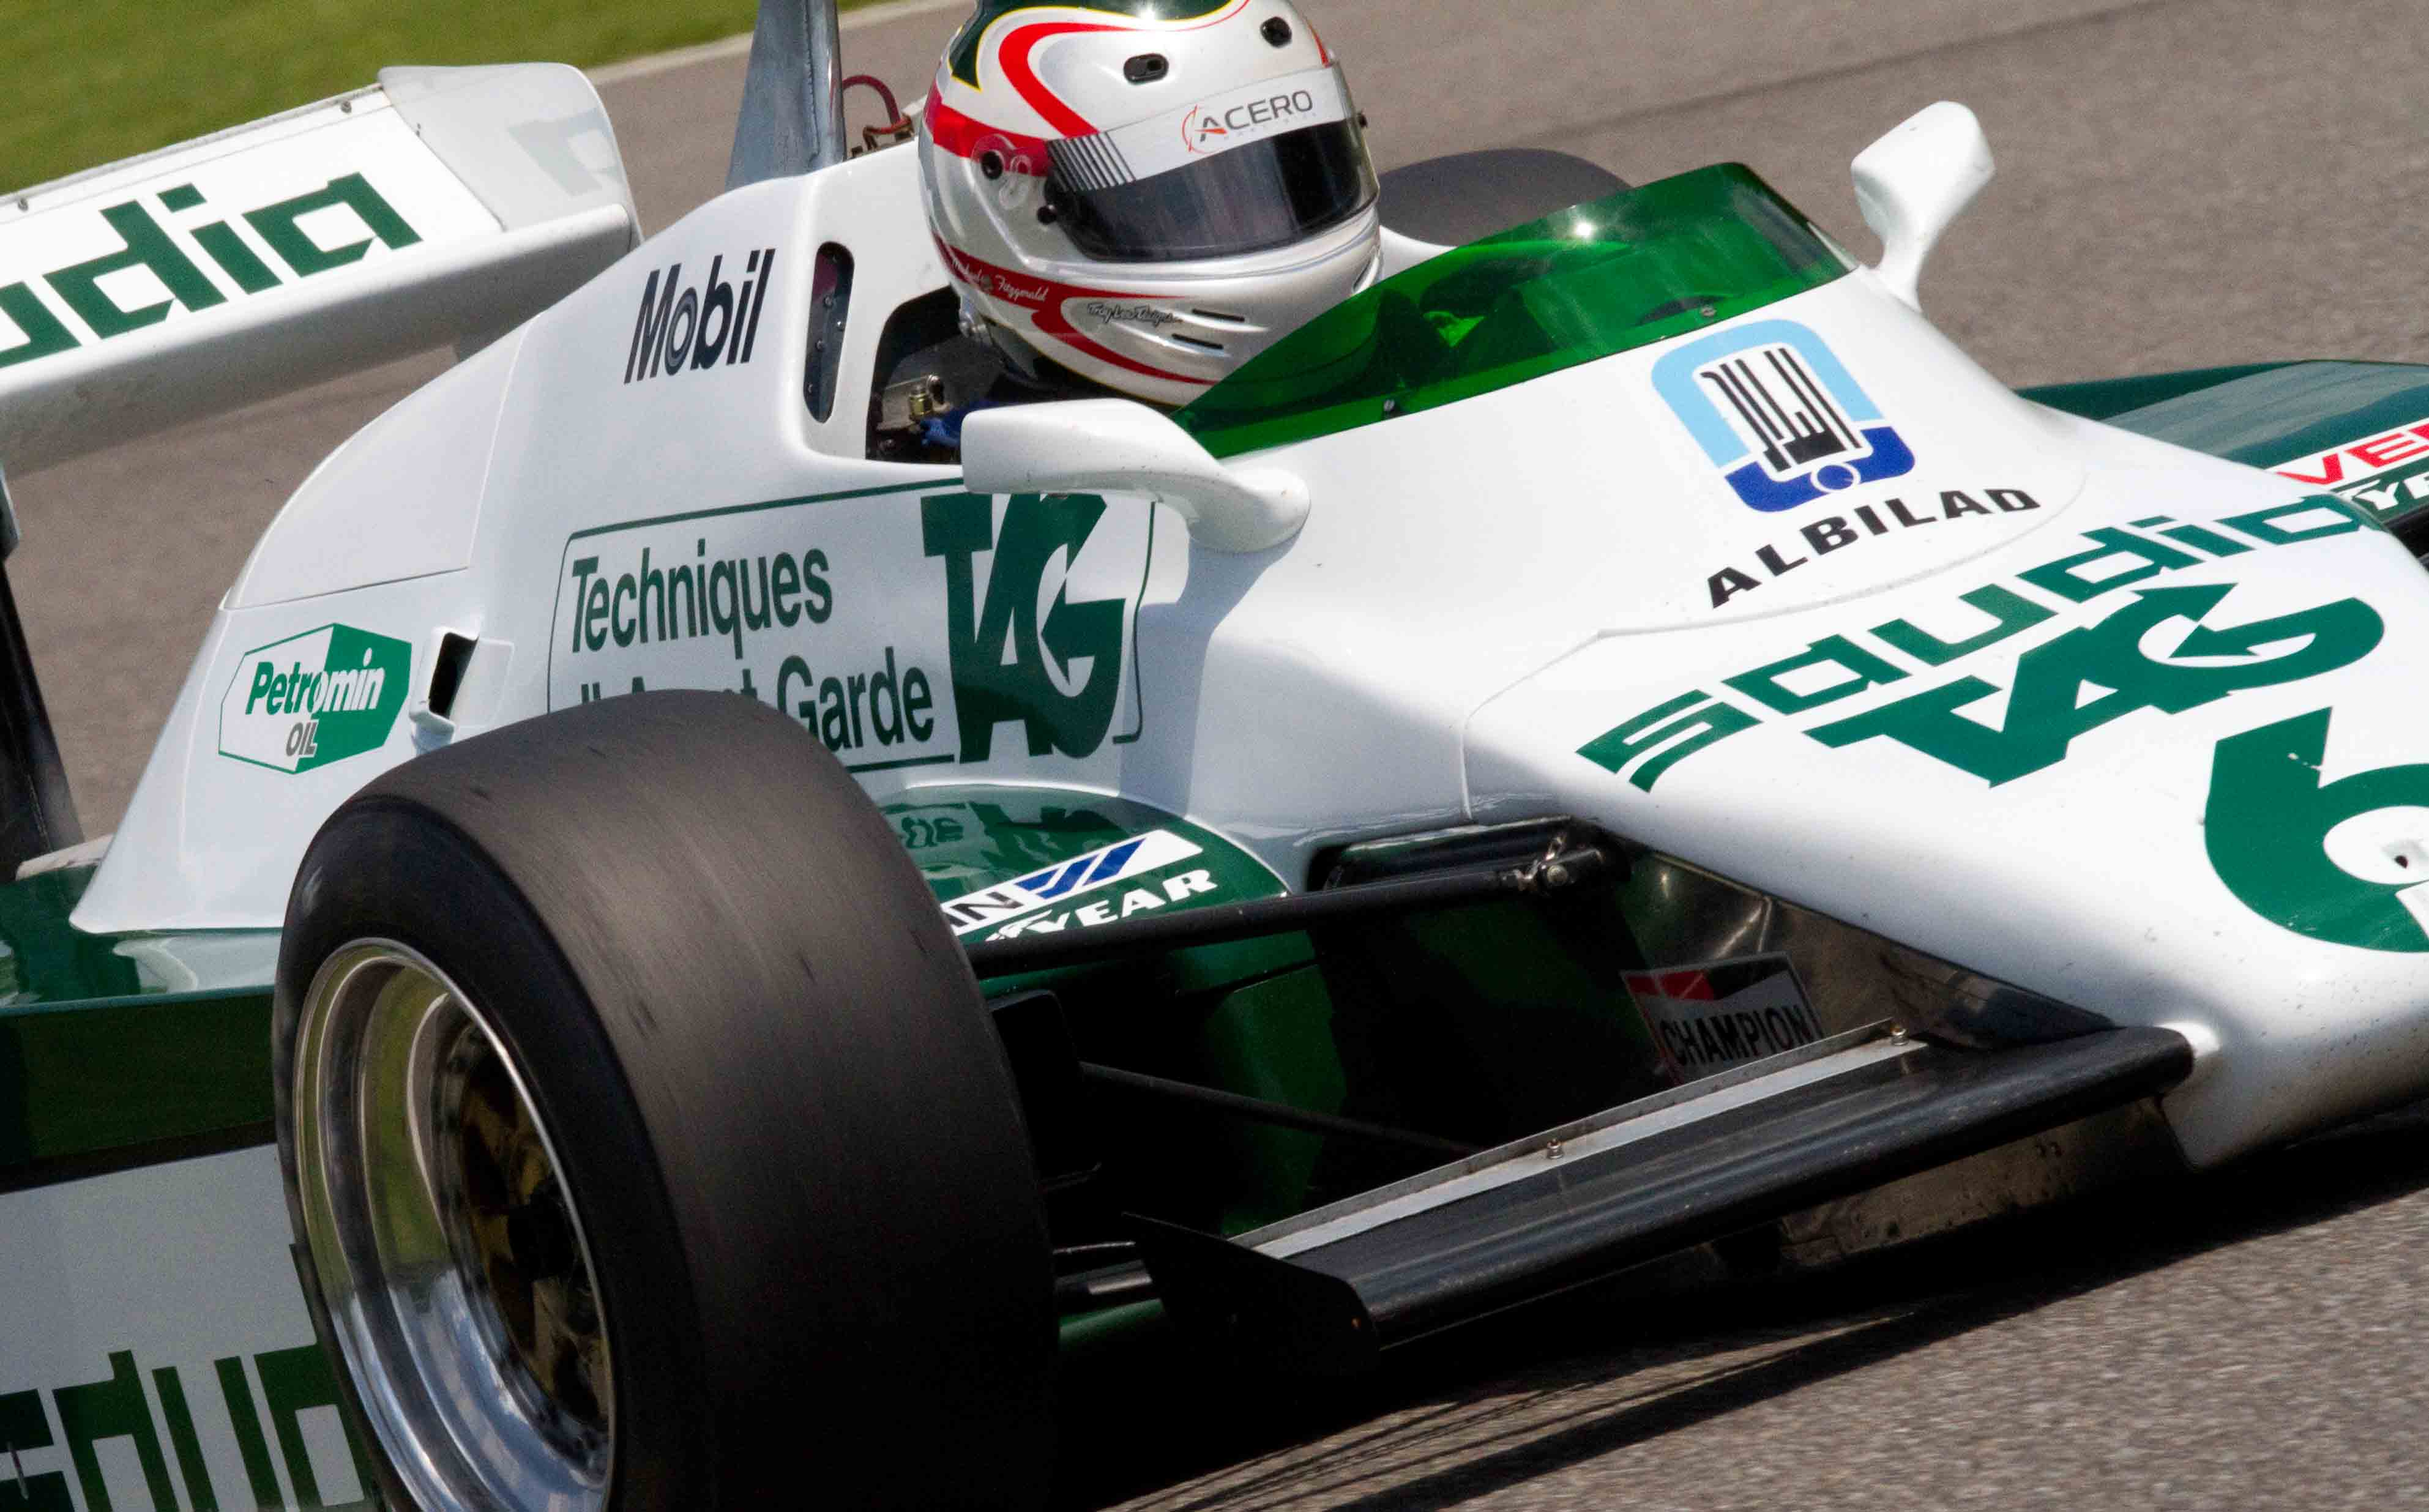 Barber Motorsports Park >> File:Williams FW08 1982 at Barber 03.jpg - Wikimedia Commons